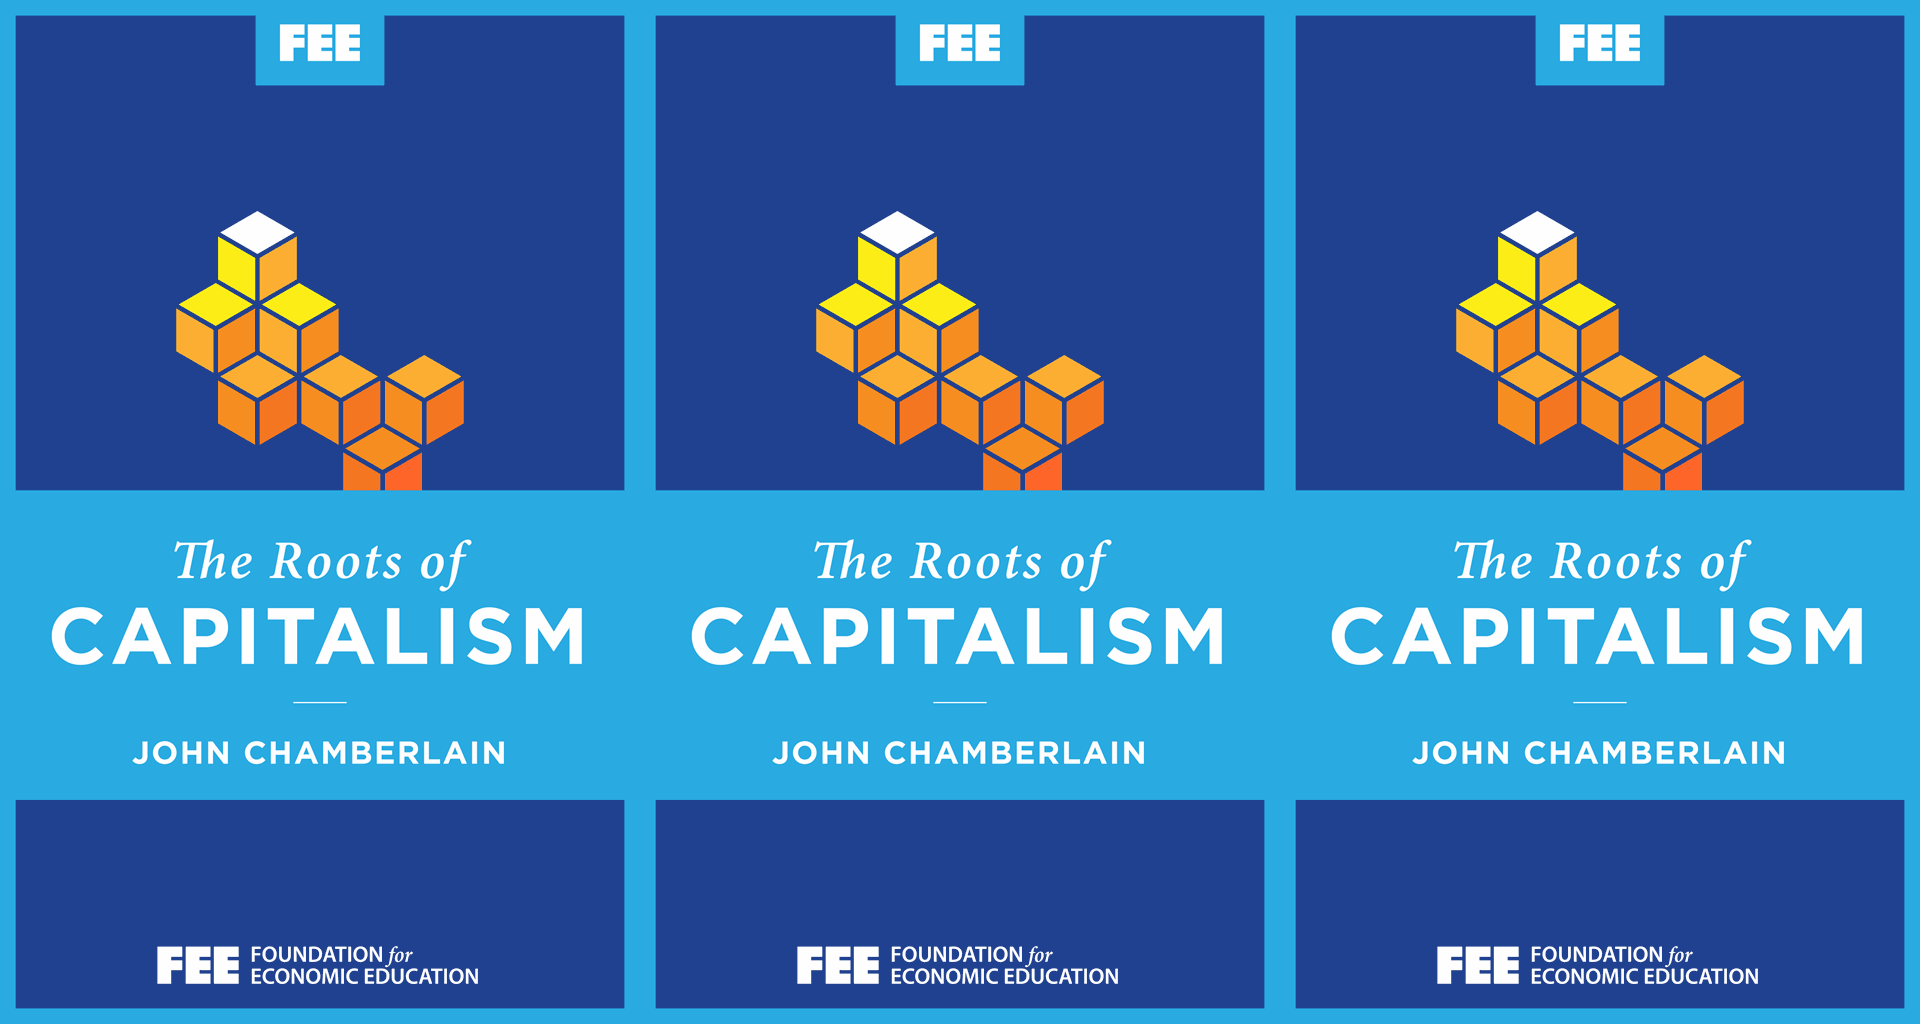 The Roots of Capitalism - Foundation for Economic Education